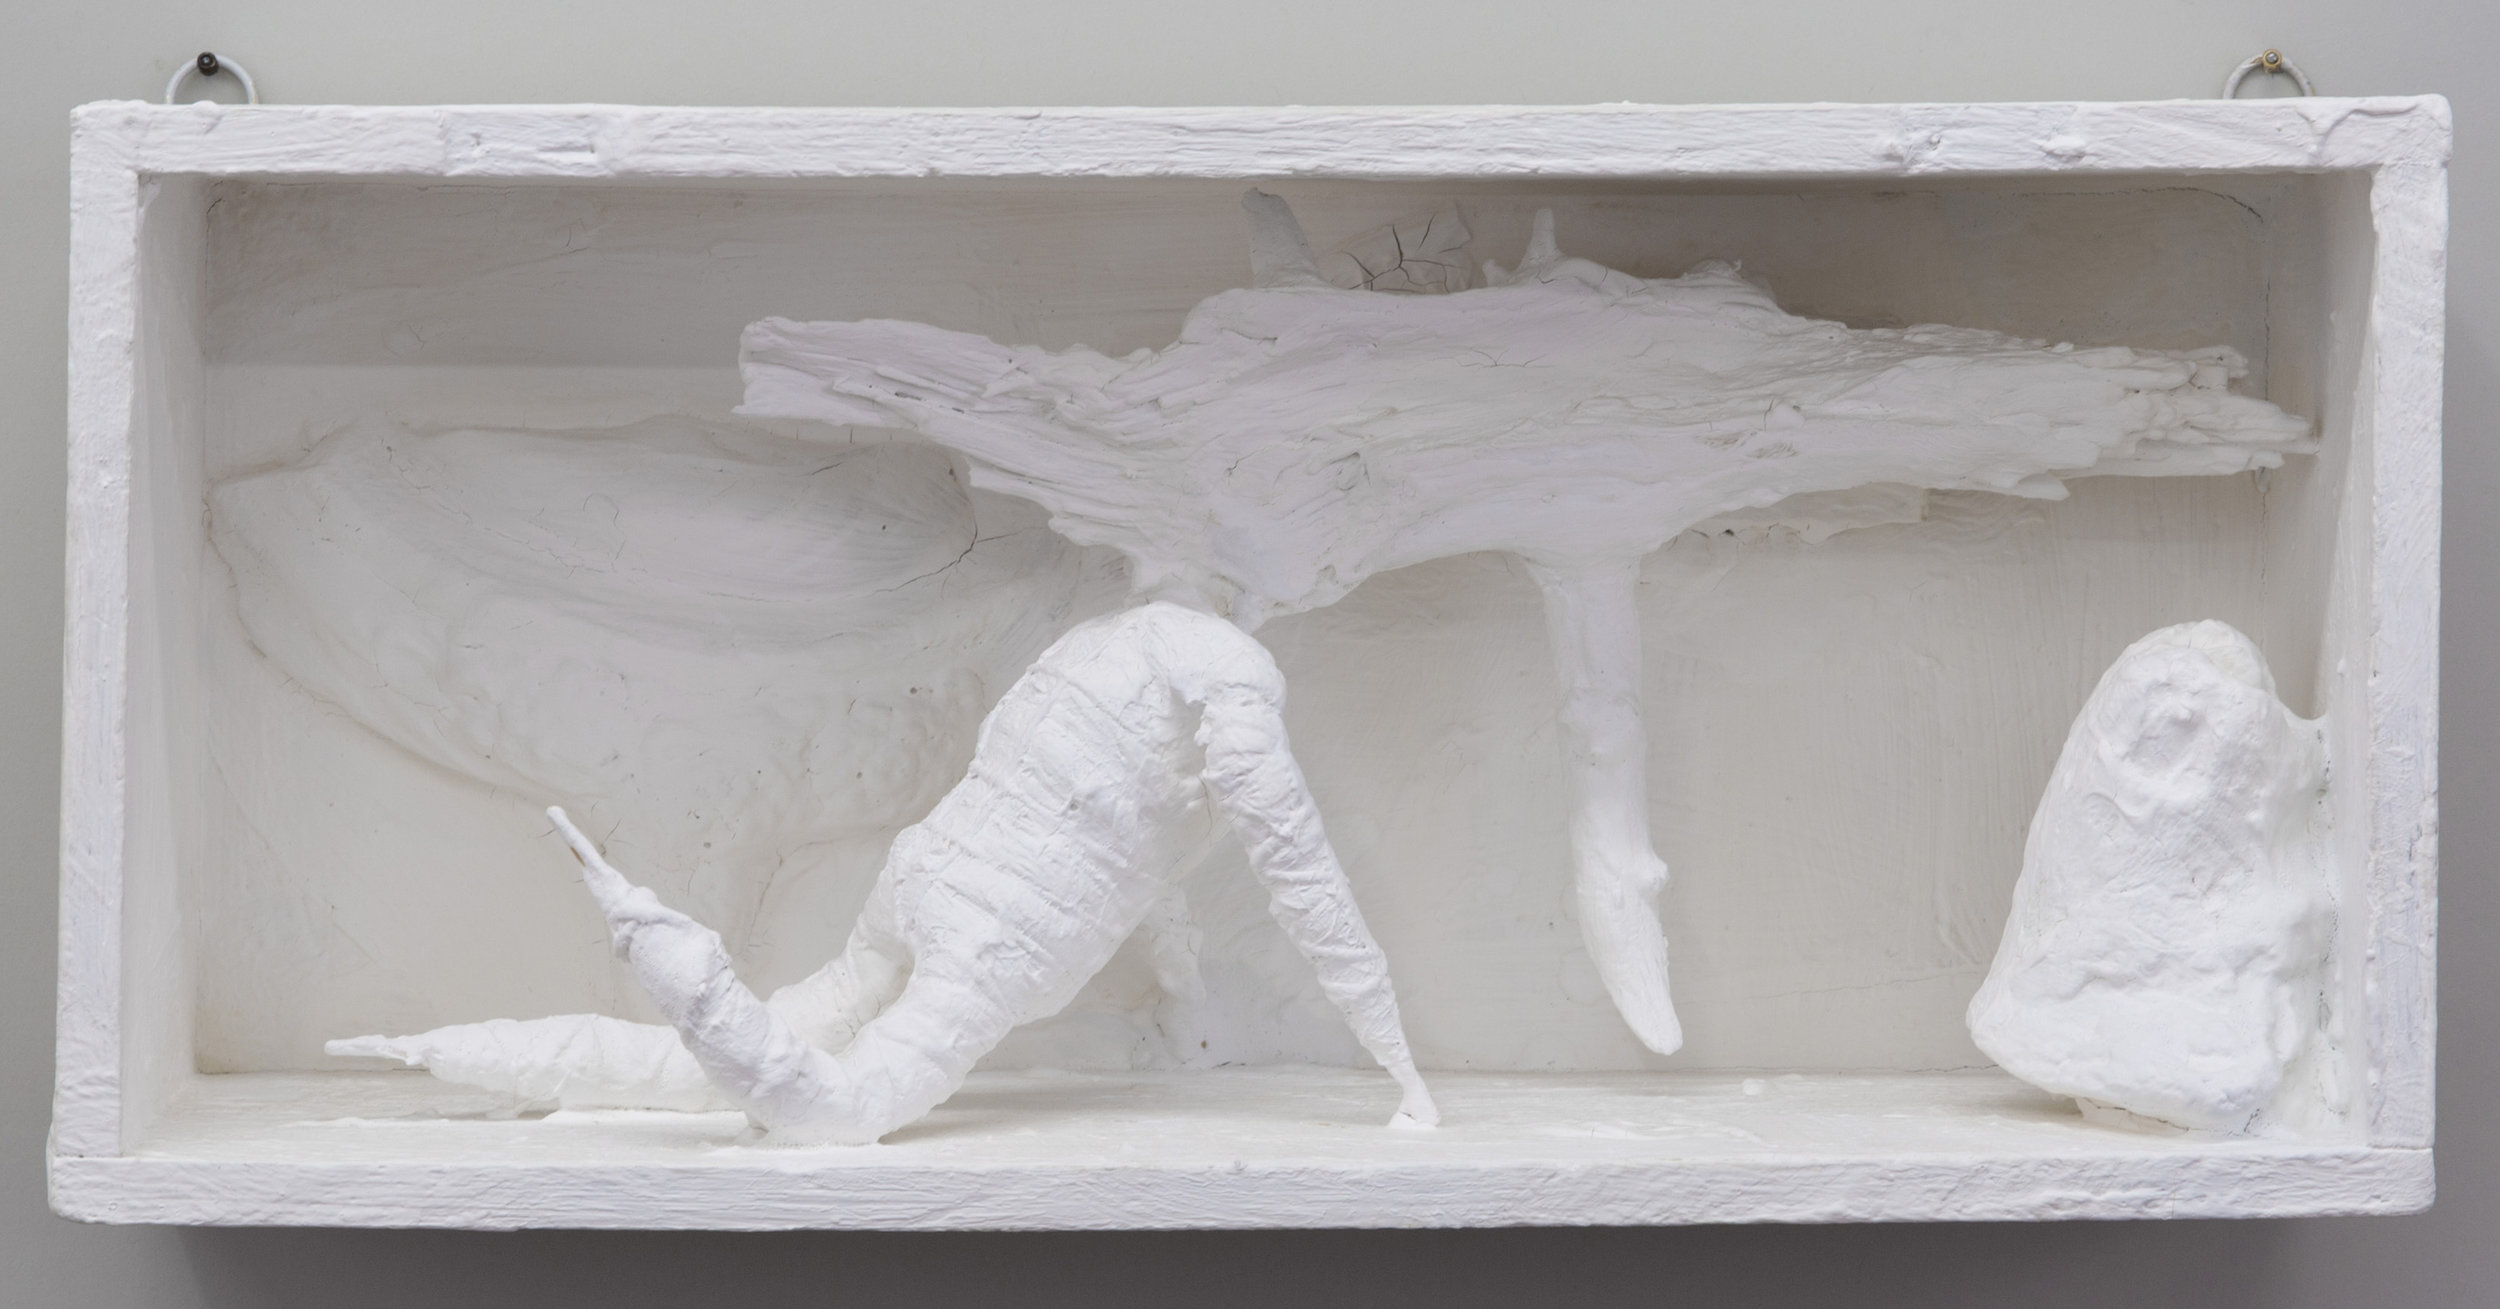 Untitled , 2012 painted wood and various materials 7 x 15 1⁄8 x 4 7⁄8 in